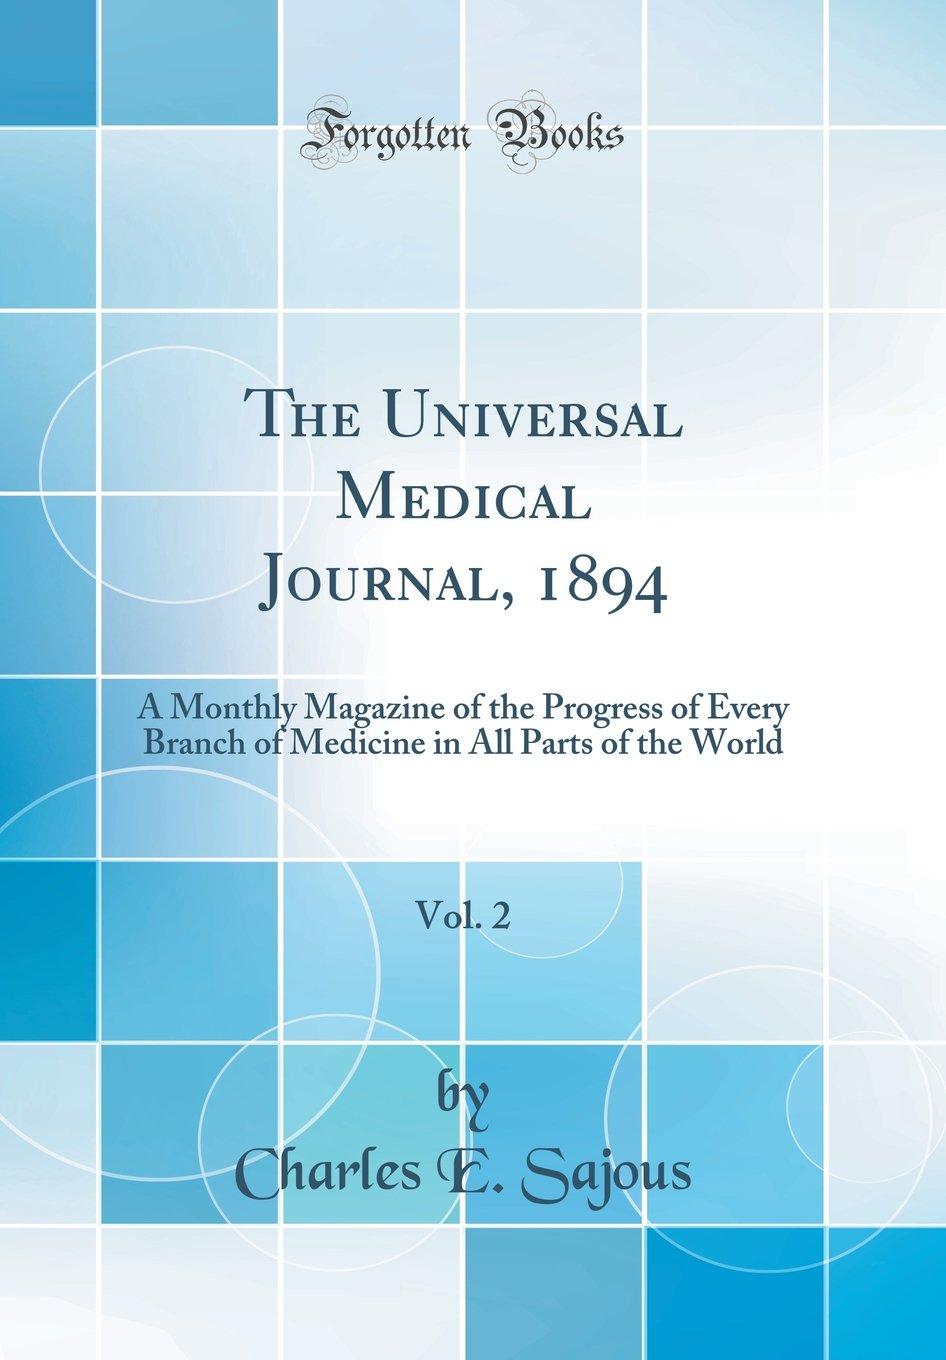 Read Online The Universal Medical Journal, 1894, Vol. 2: A Monthly Magazine of the Progress of Every Branch of Medicine in All Parts of the World (Classic Reprint) PDF